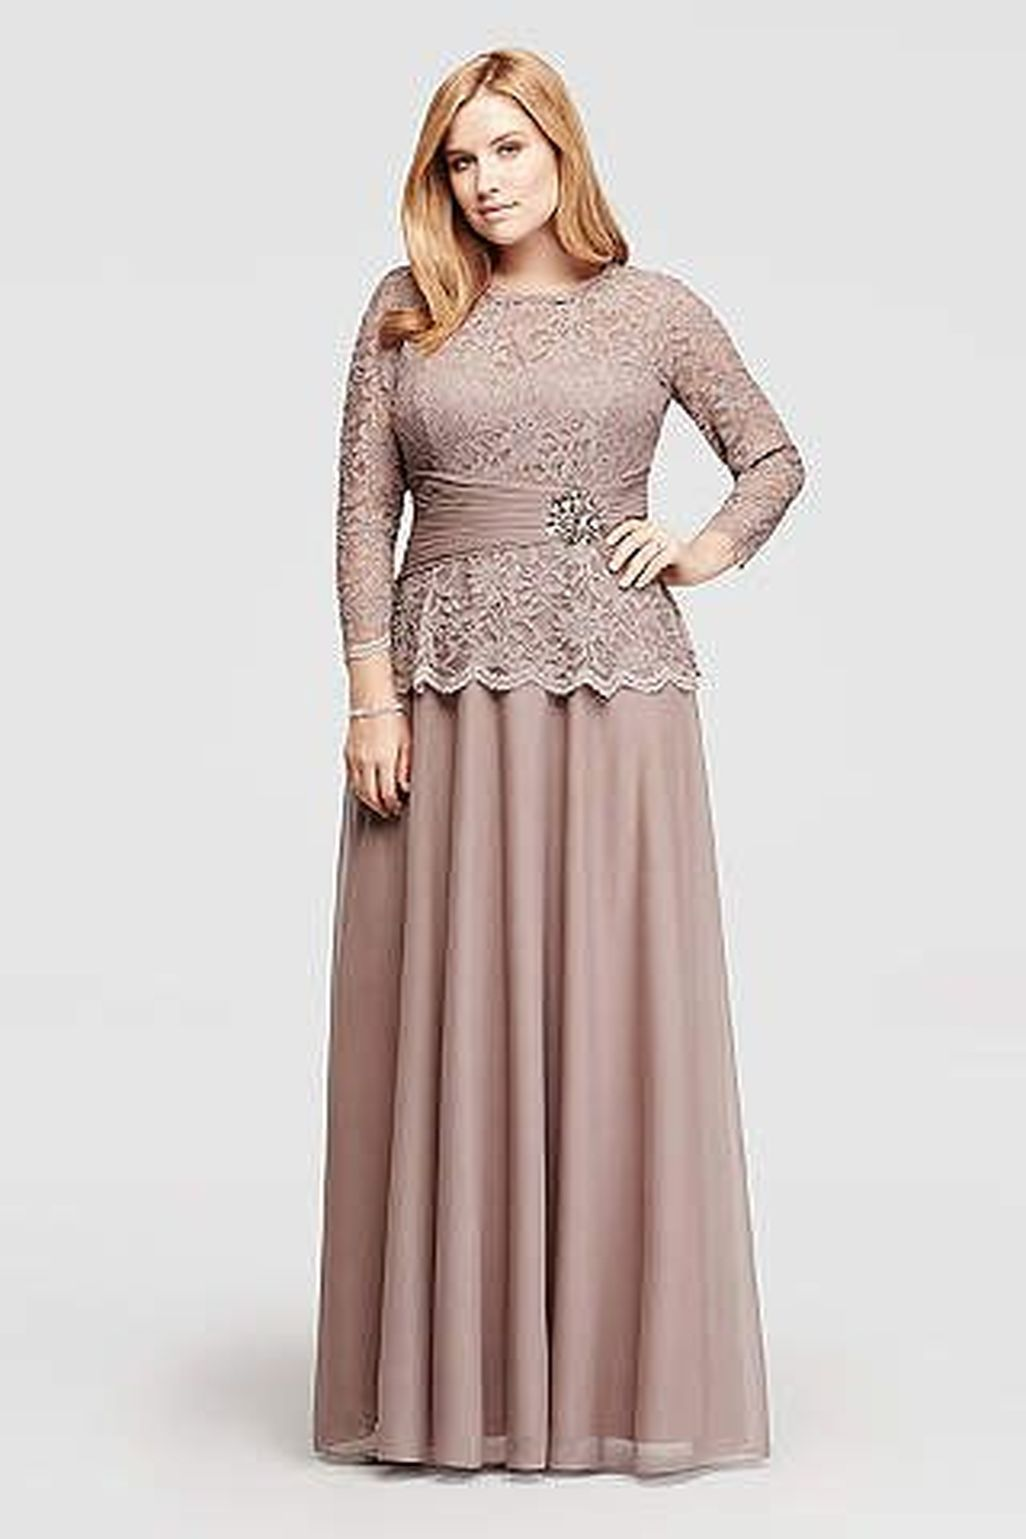 Lace dress for big size   Stunning Mother Of The Groom Dresses Inspirations Ideas  Books